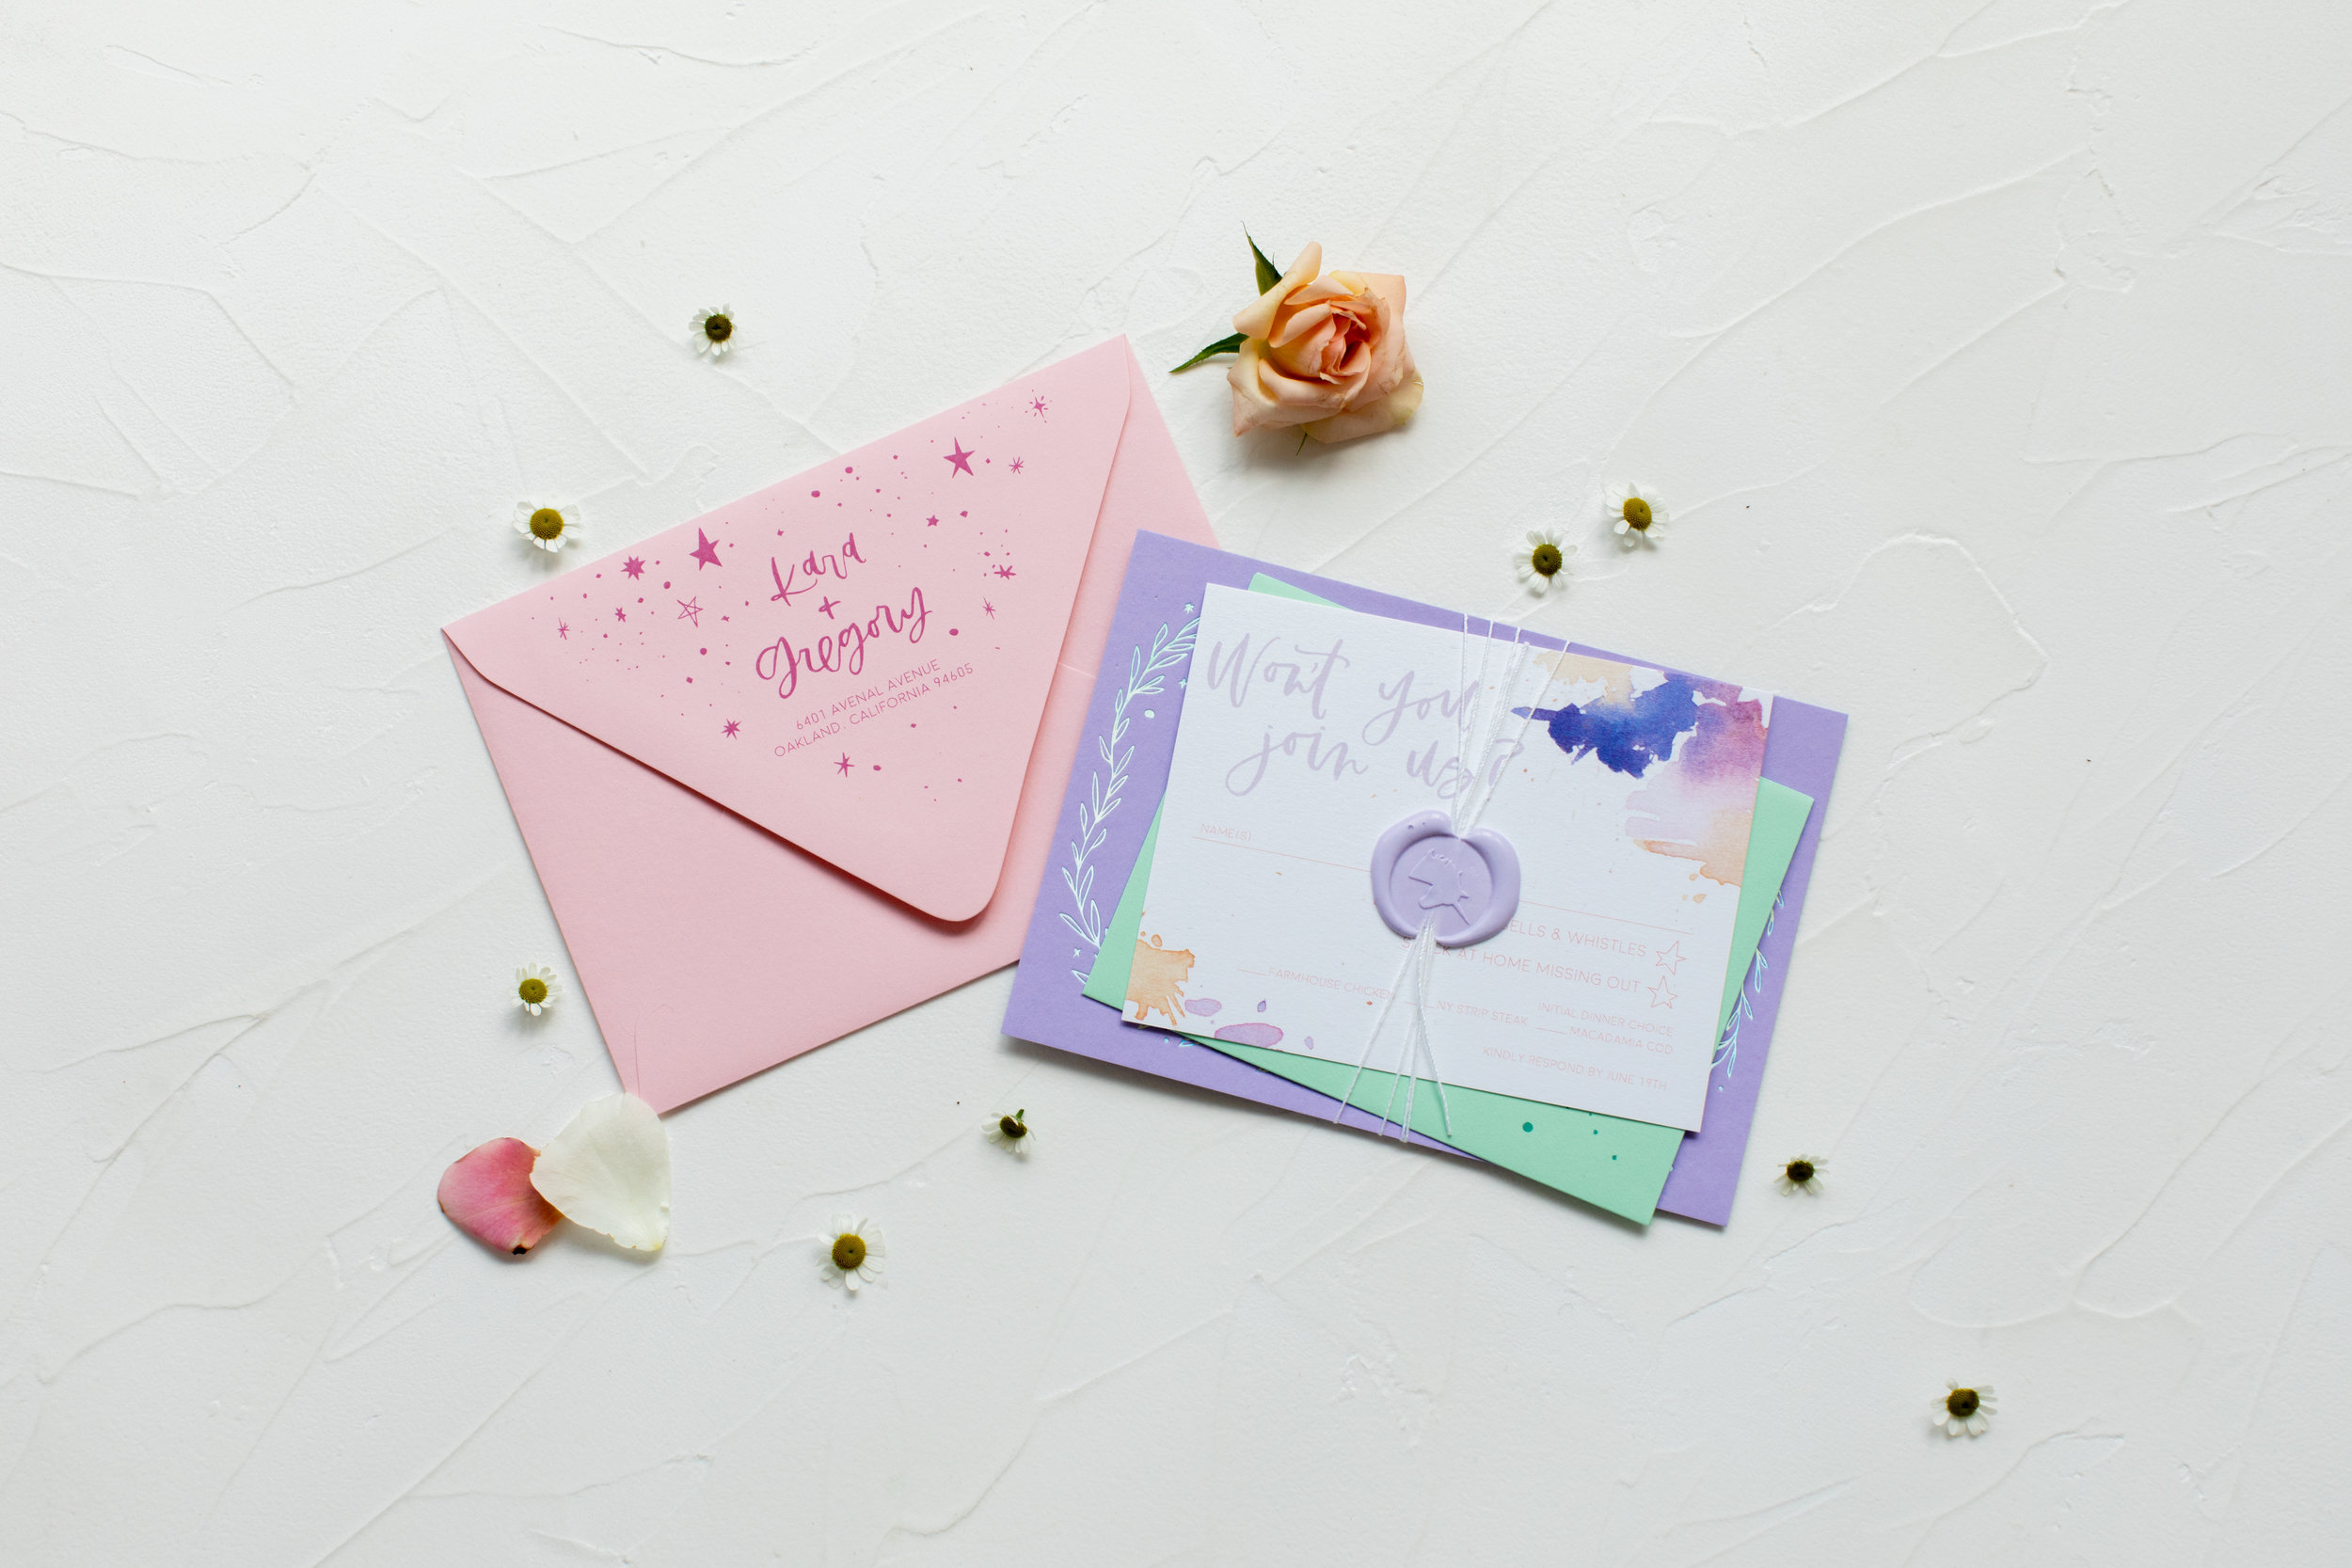 holographic wedding invitations with wax seal